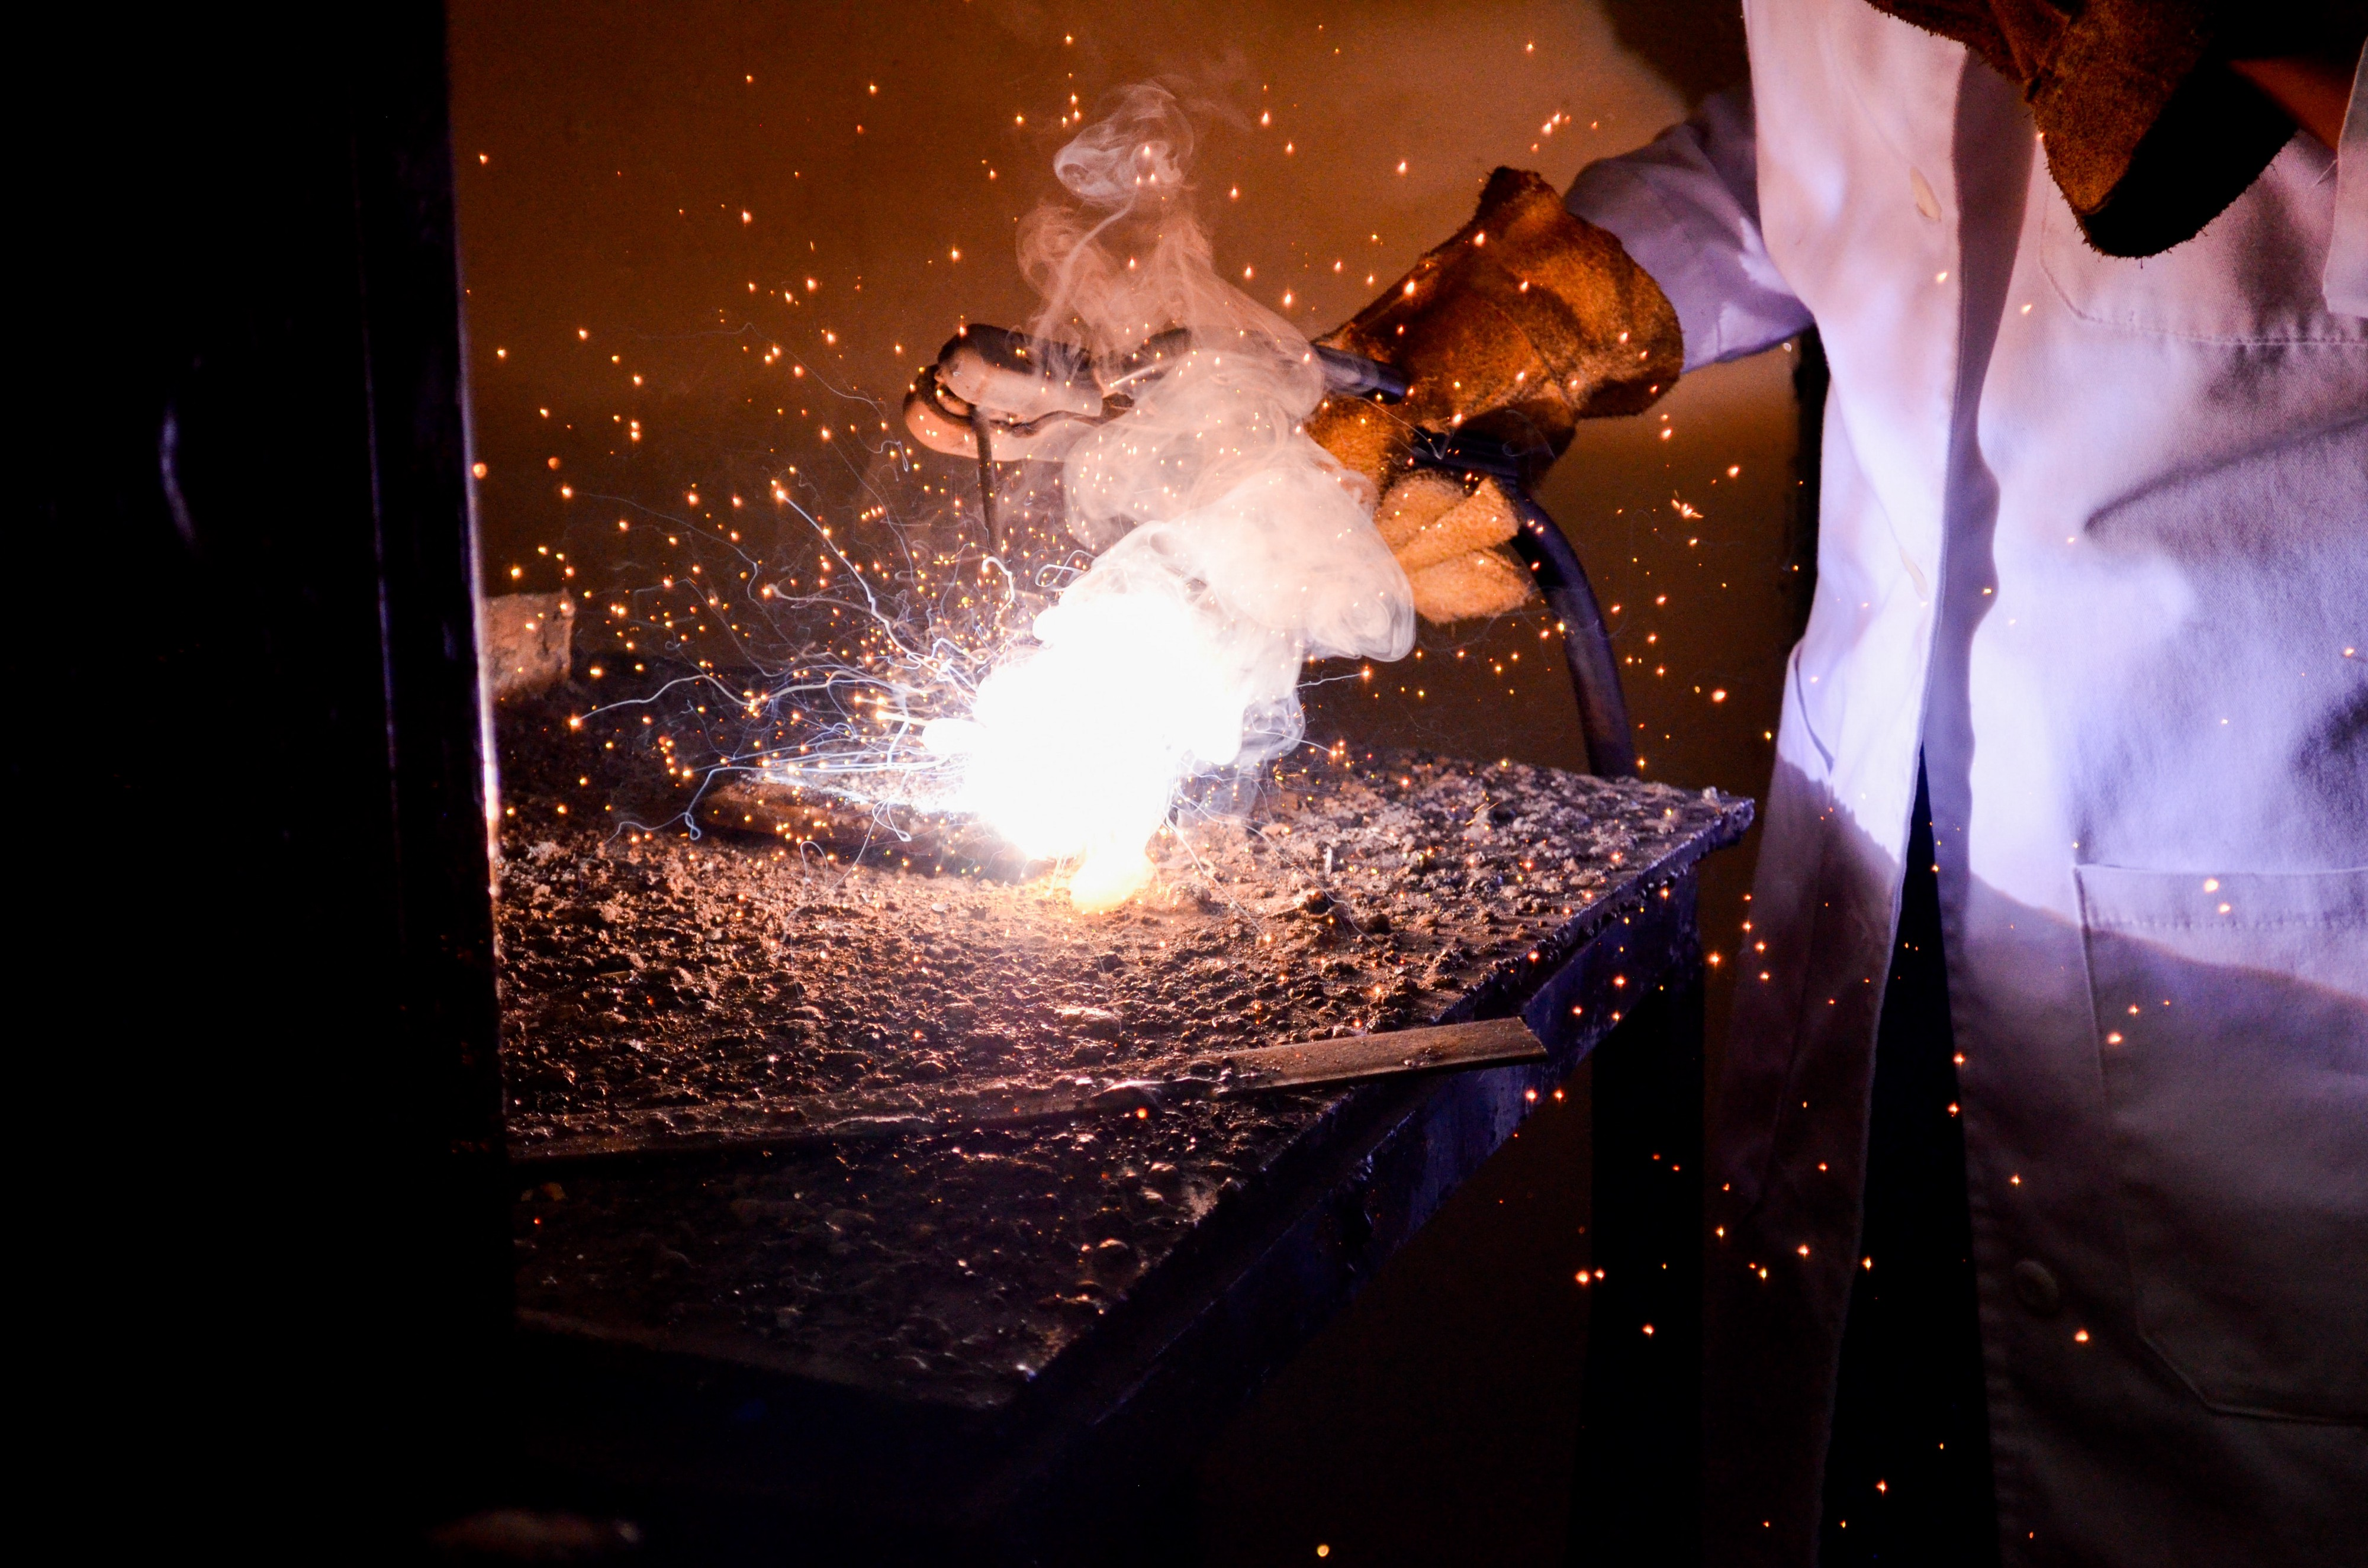 Hot And Heavy Welding Fabrication And Welding Services By Hot And Heavy Welding Medium